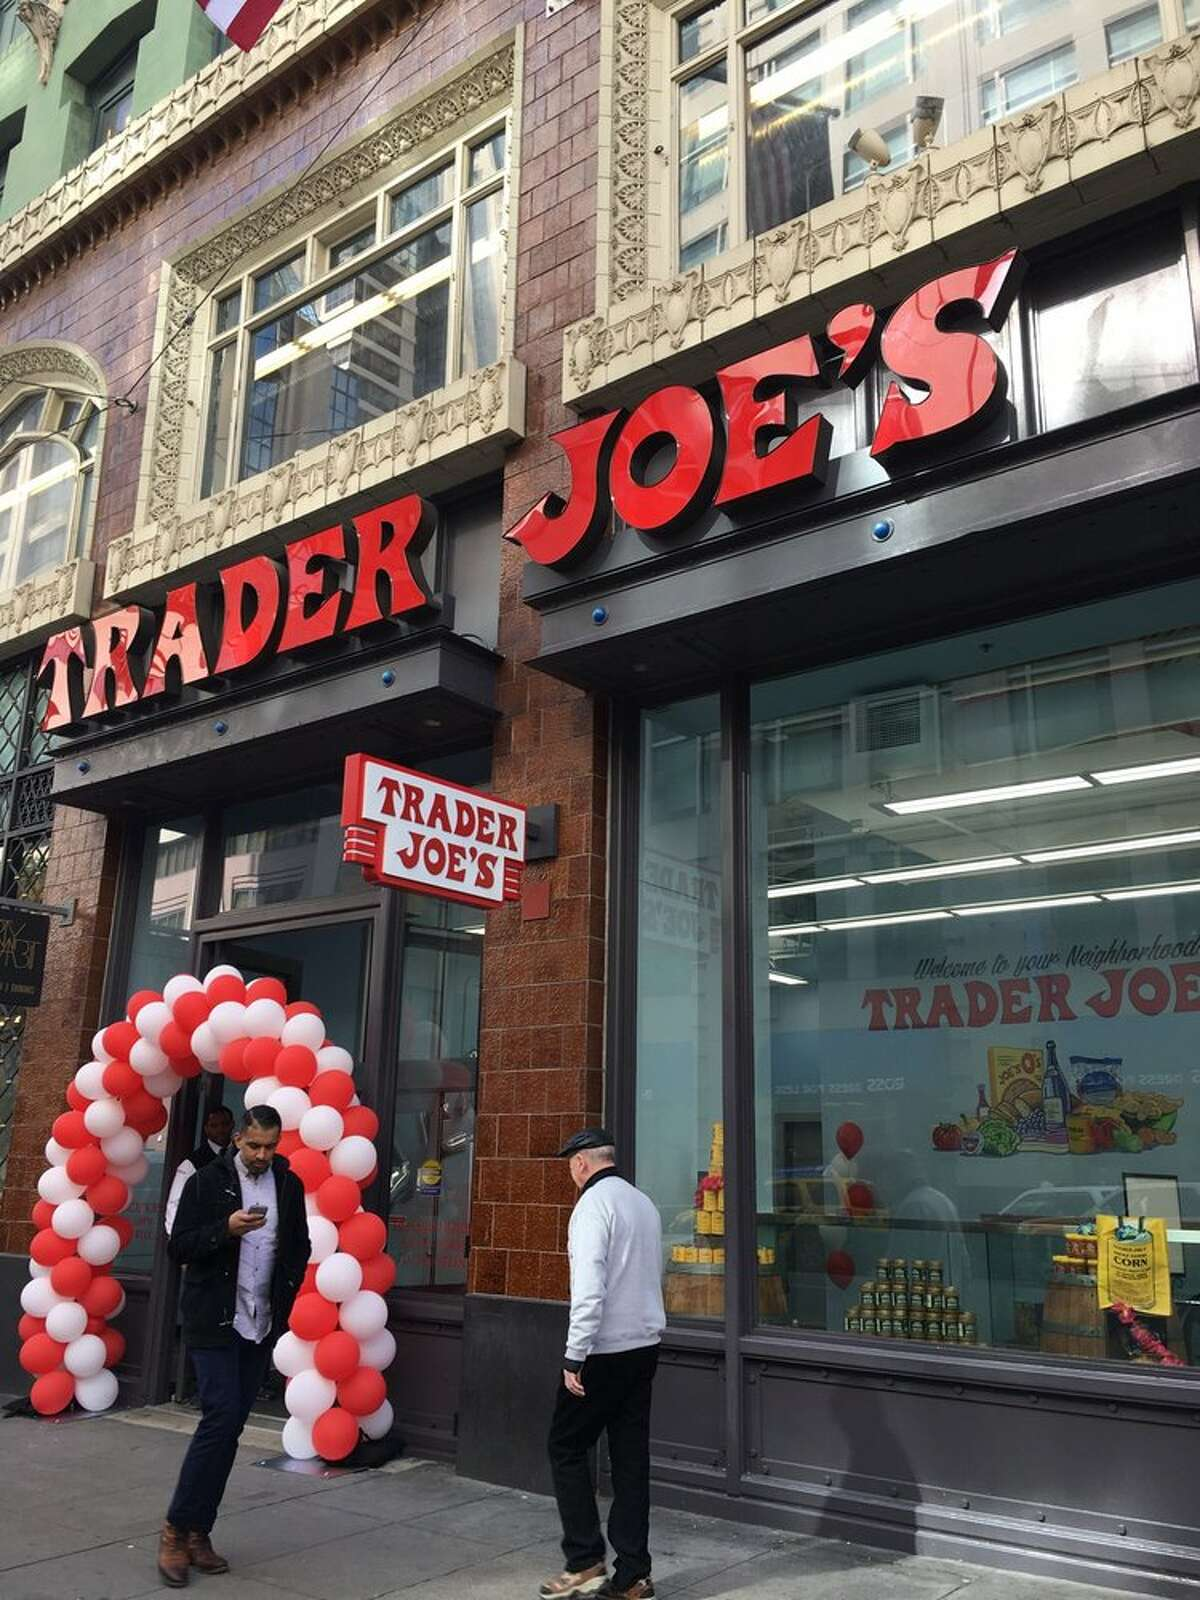 The top grocery stores in the U.S. 1. Trader Joe's